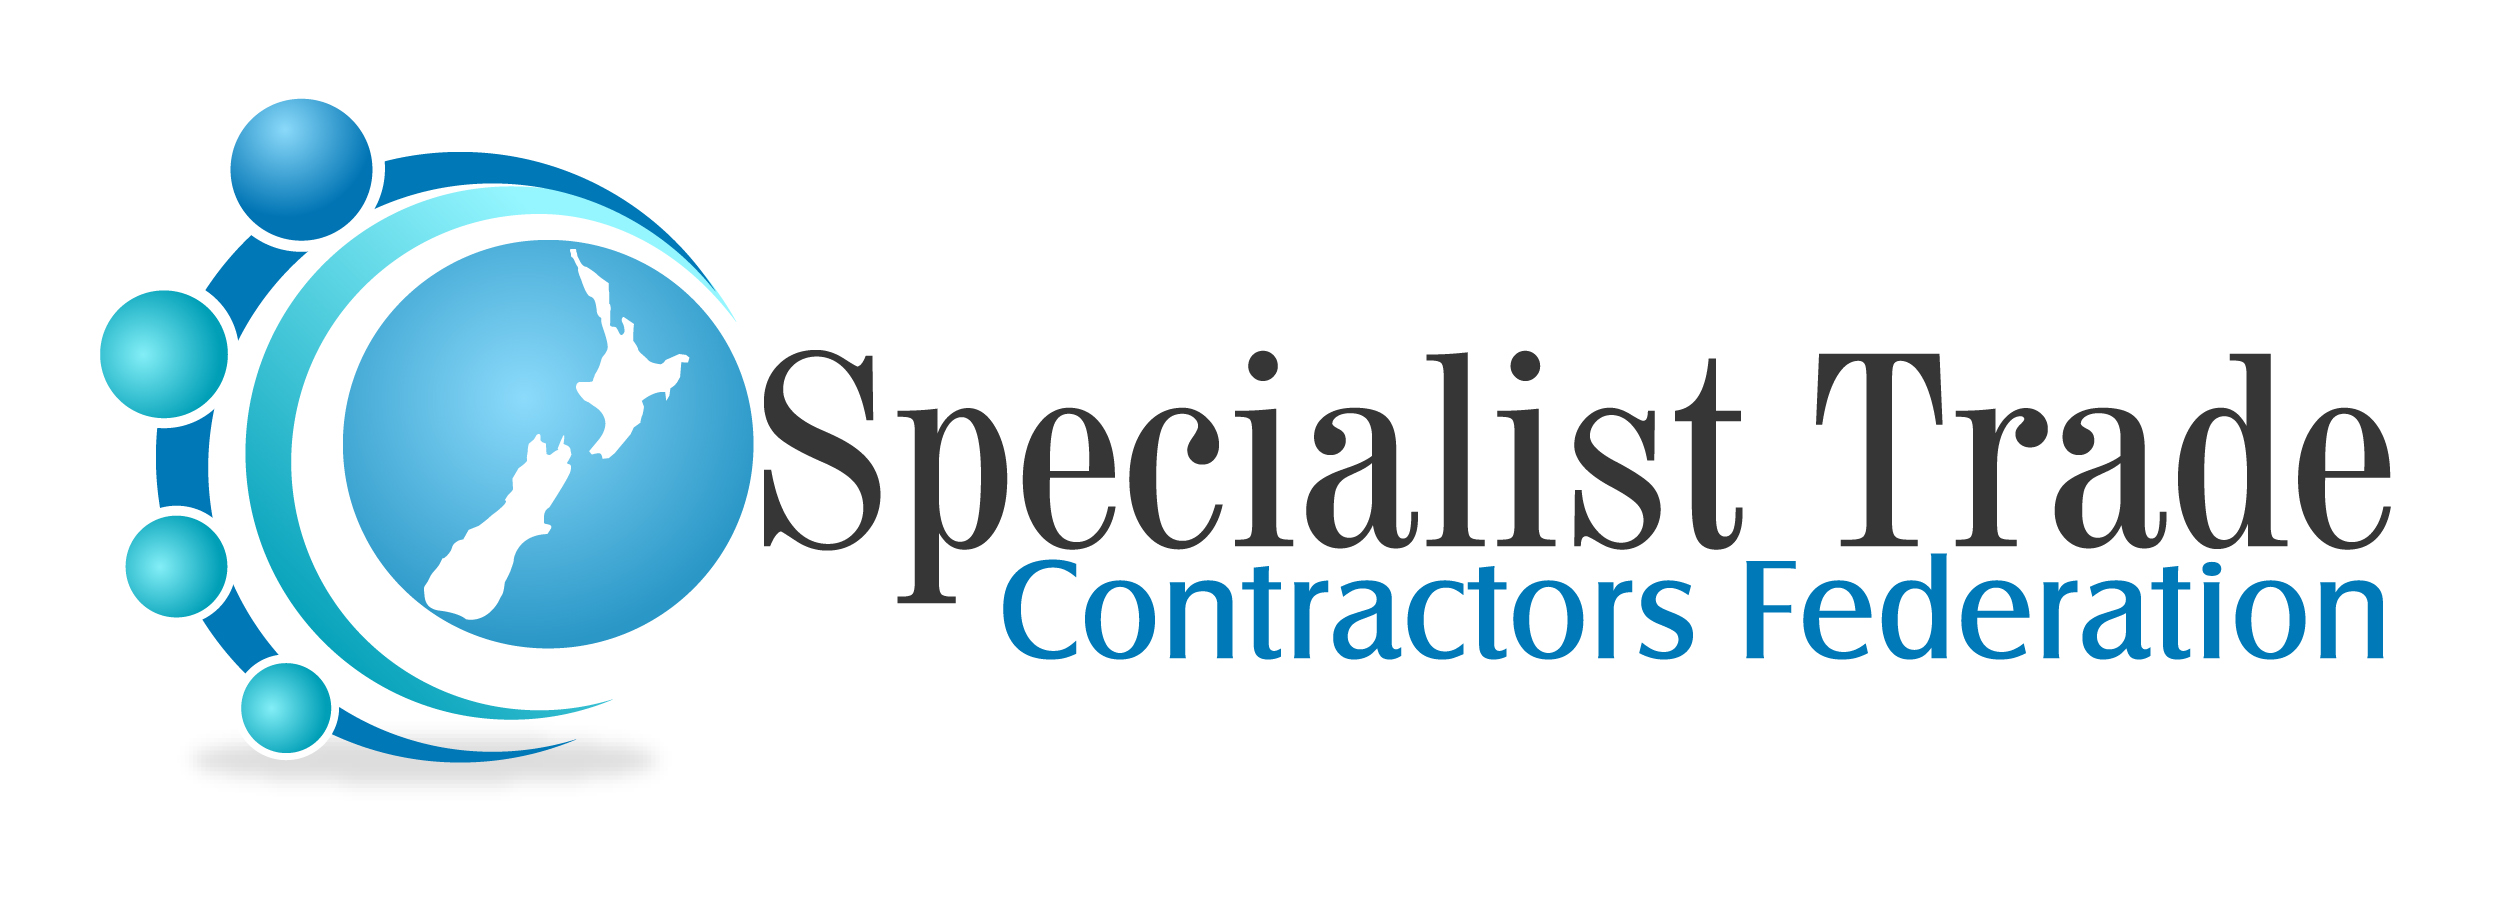 SPECIALISTS TRADING CONTRACTORS